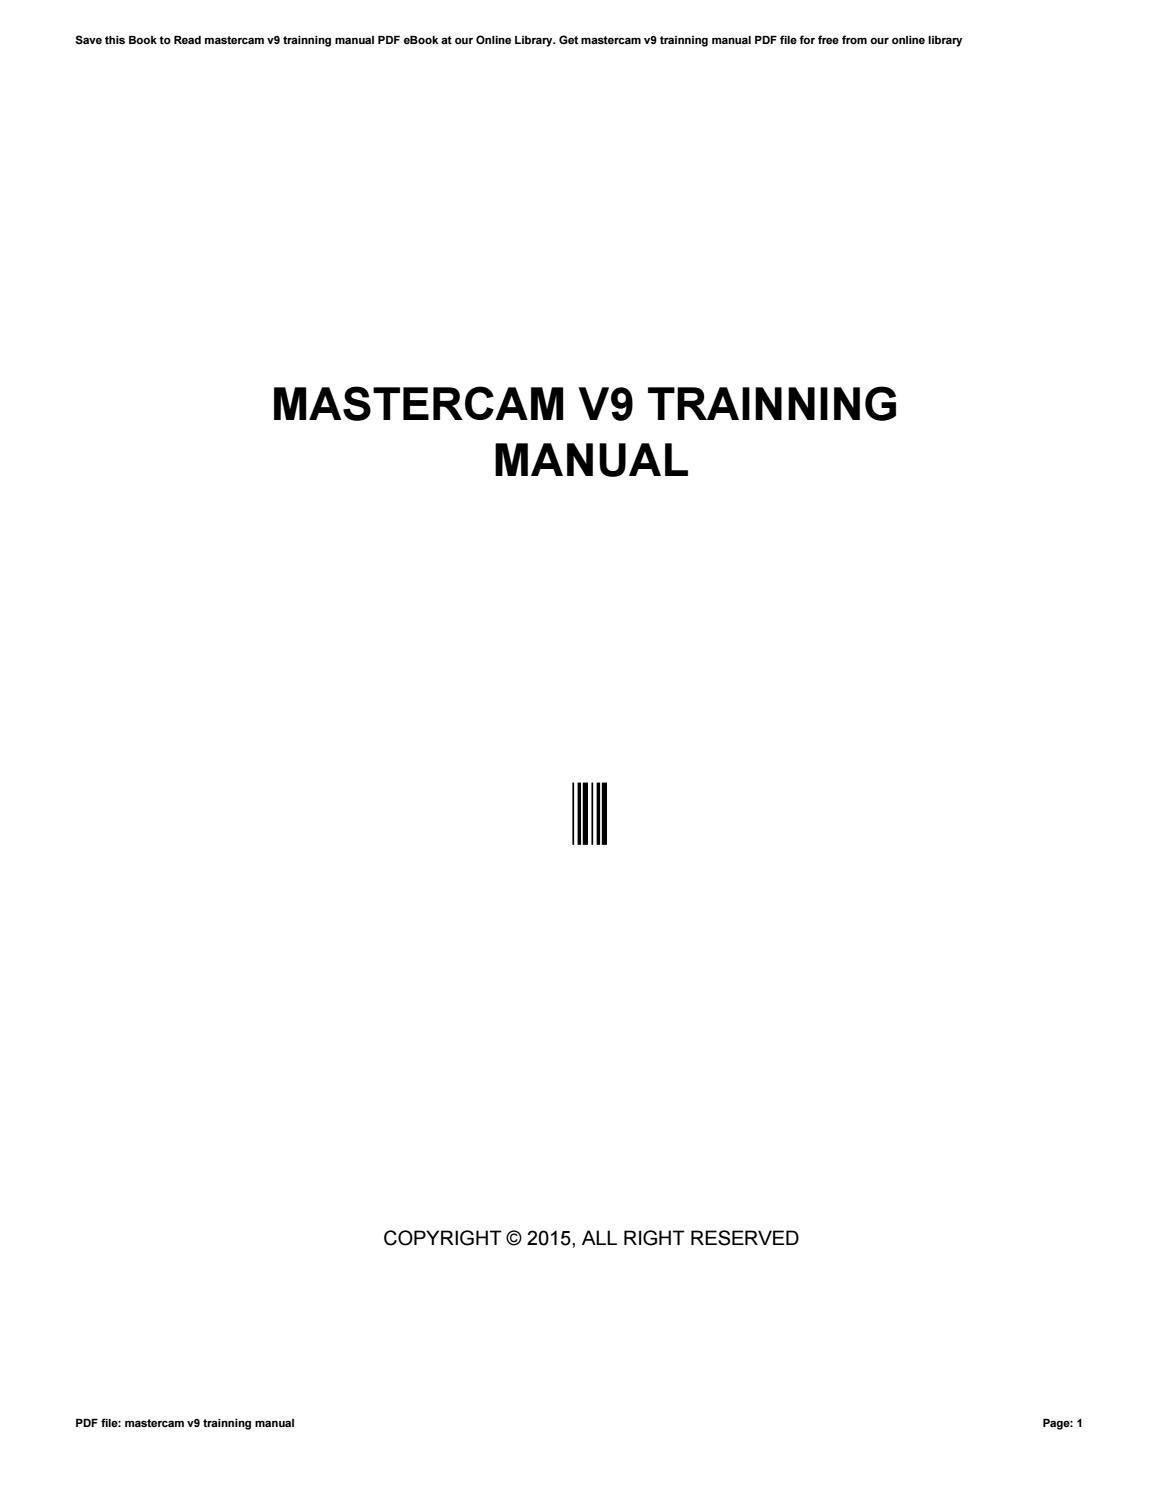 mastercam v9 trainning manual by i805 issuu rh issuu com